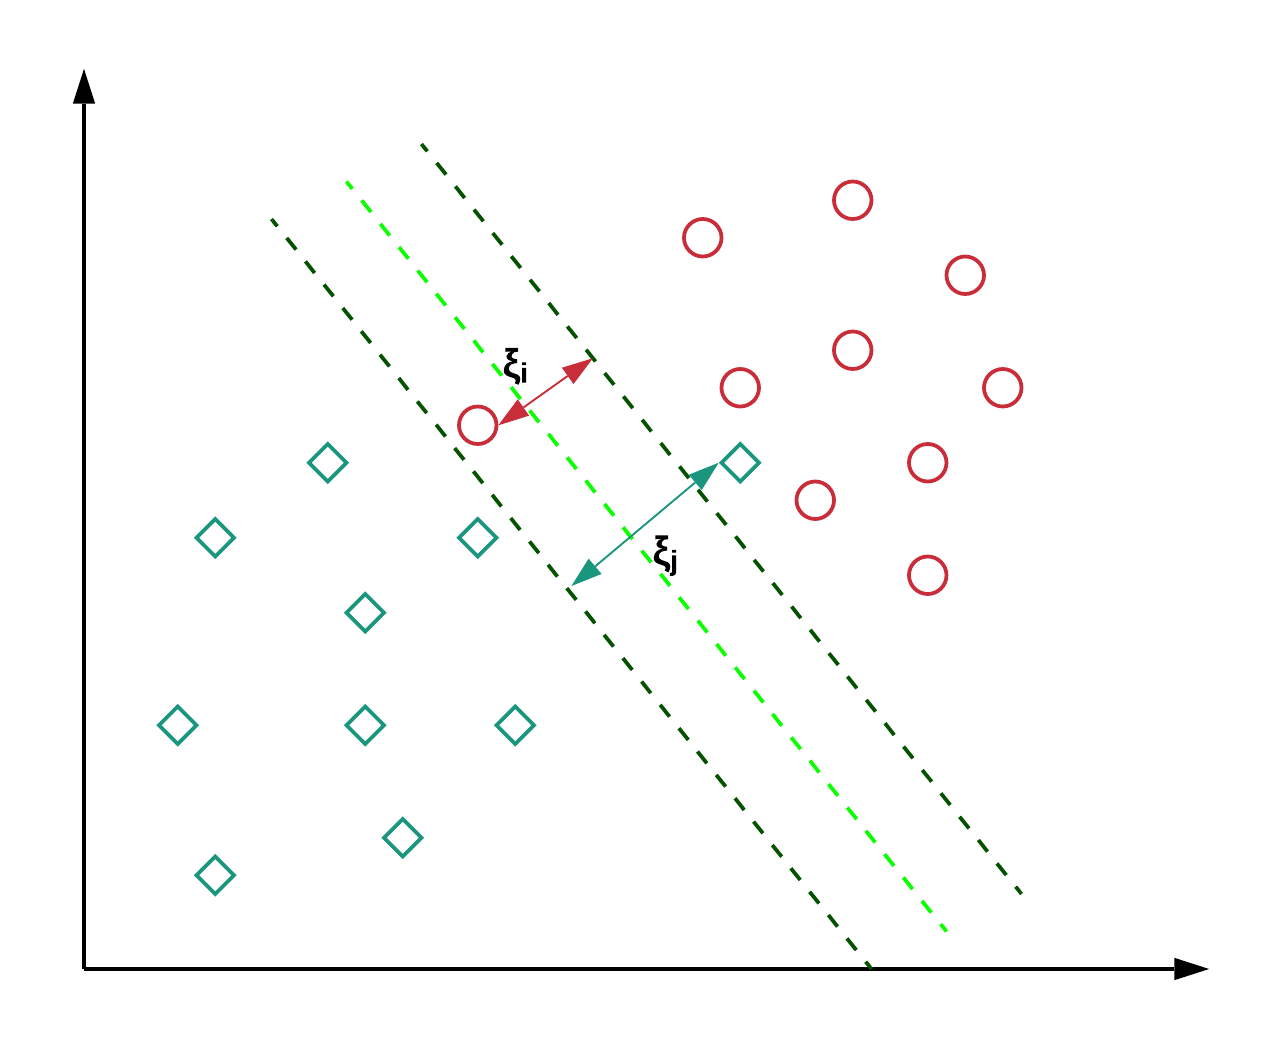 SV classfier support vector machines